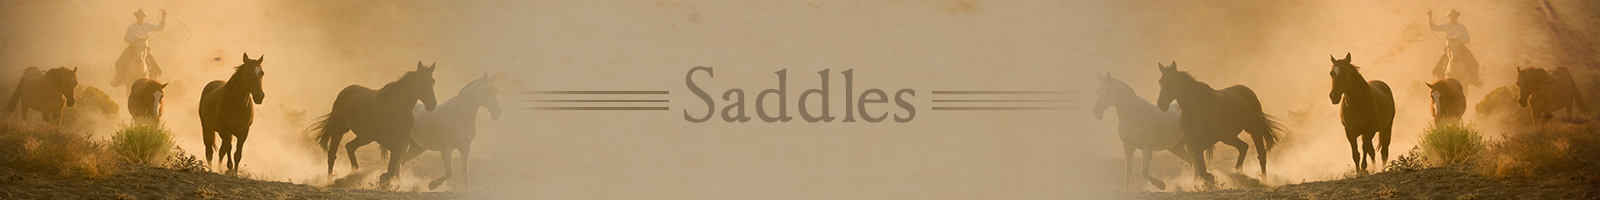 saddleshdr.png